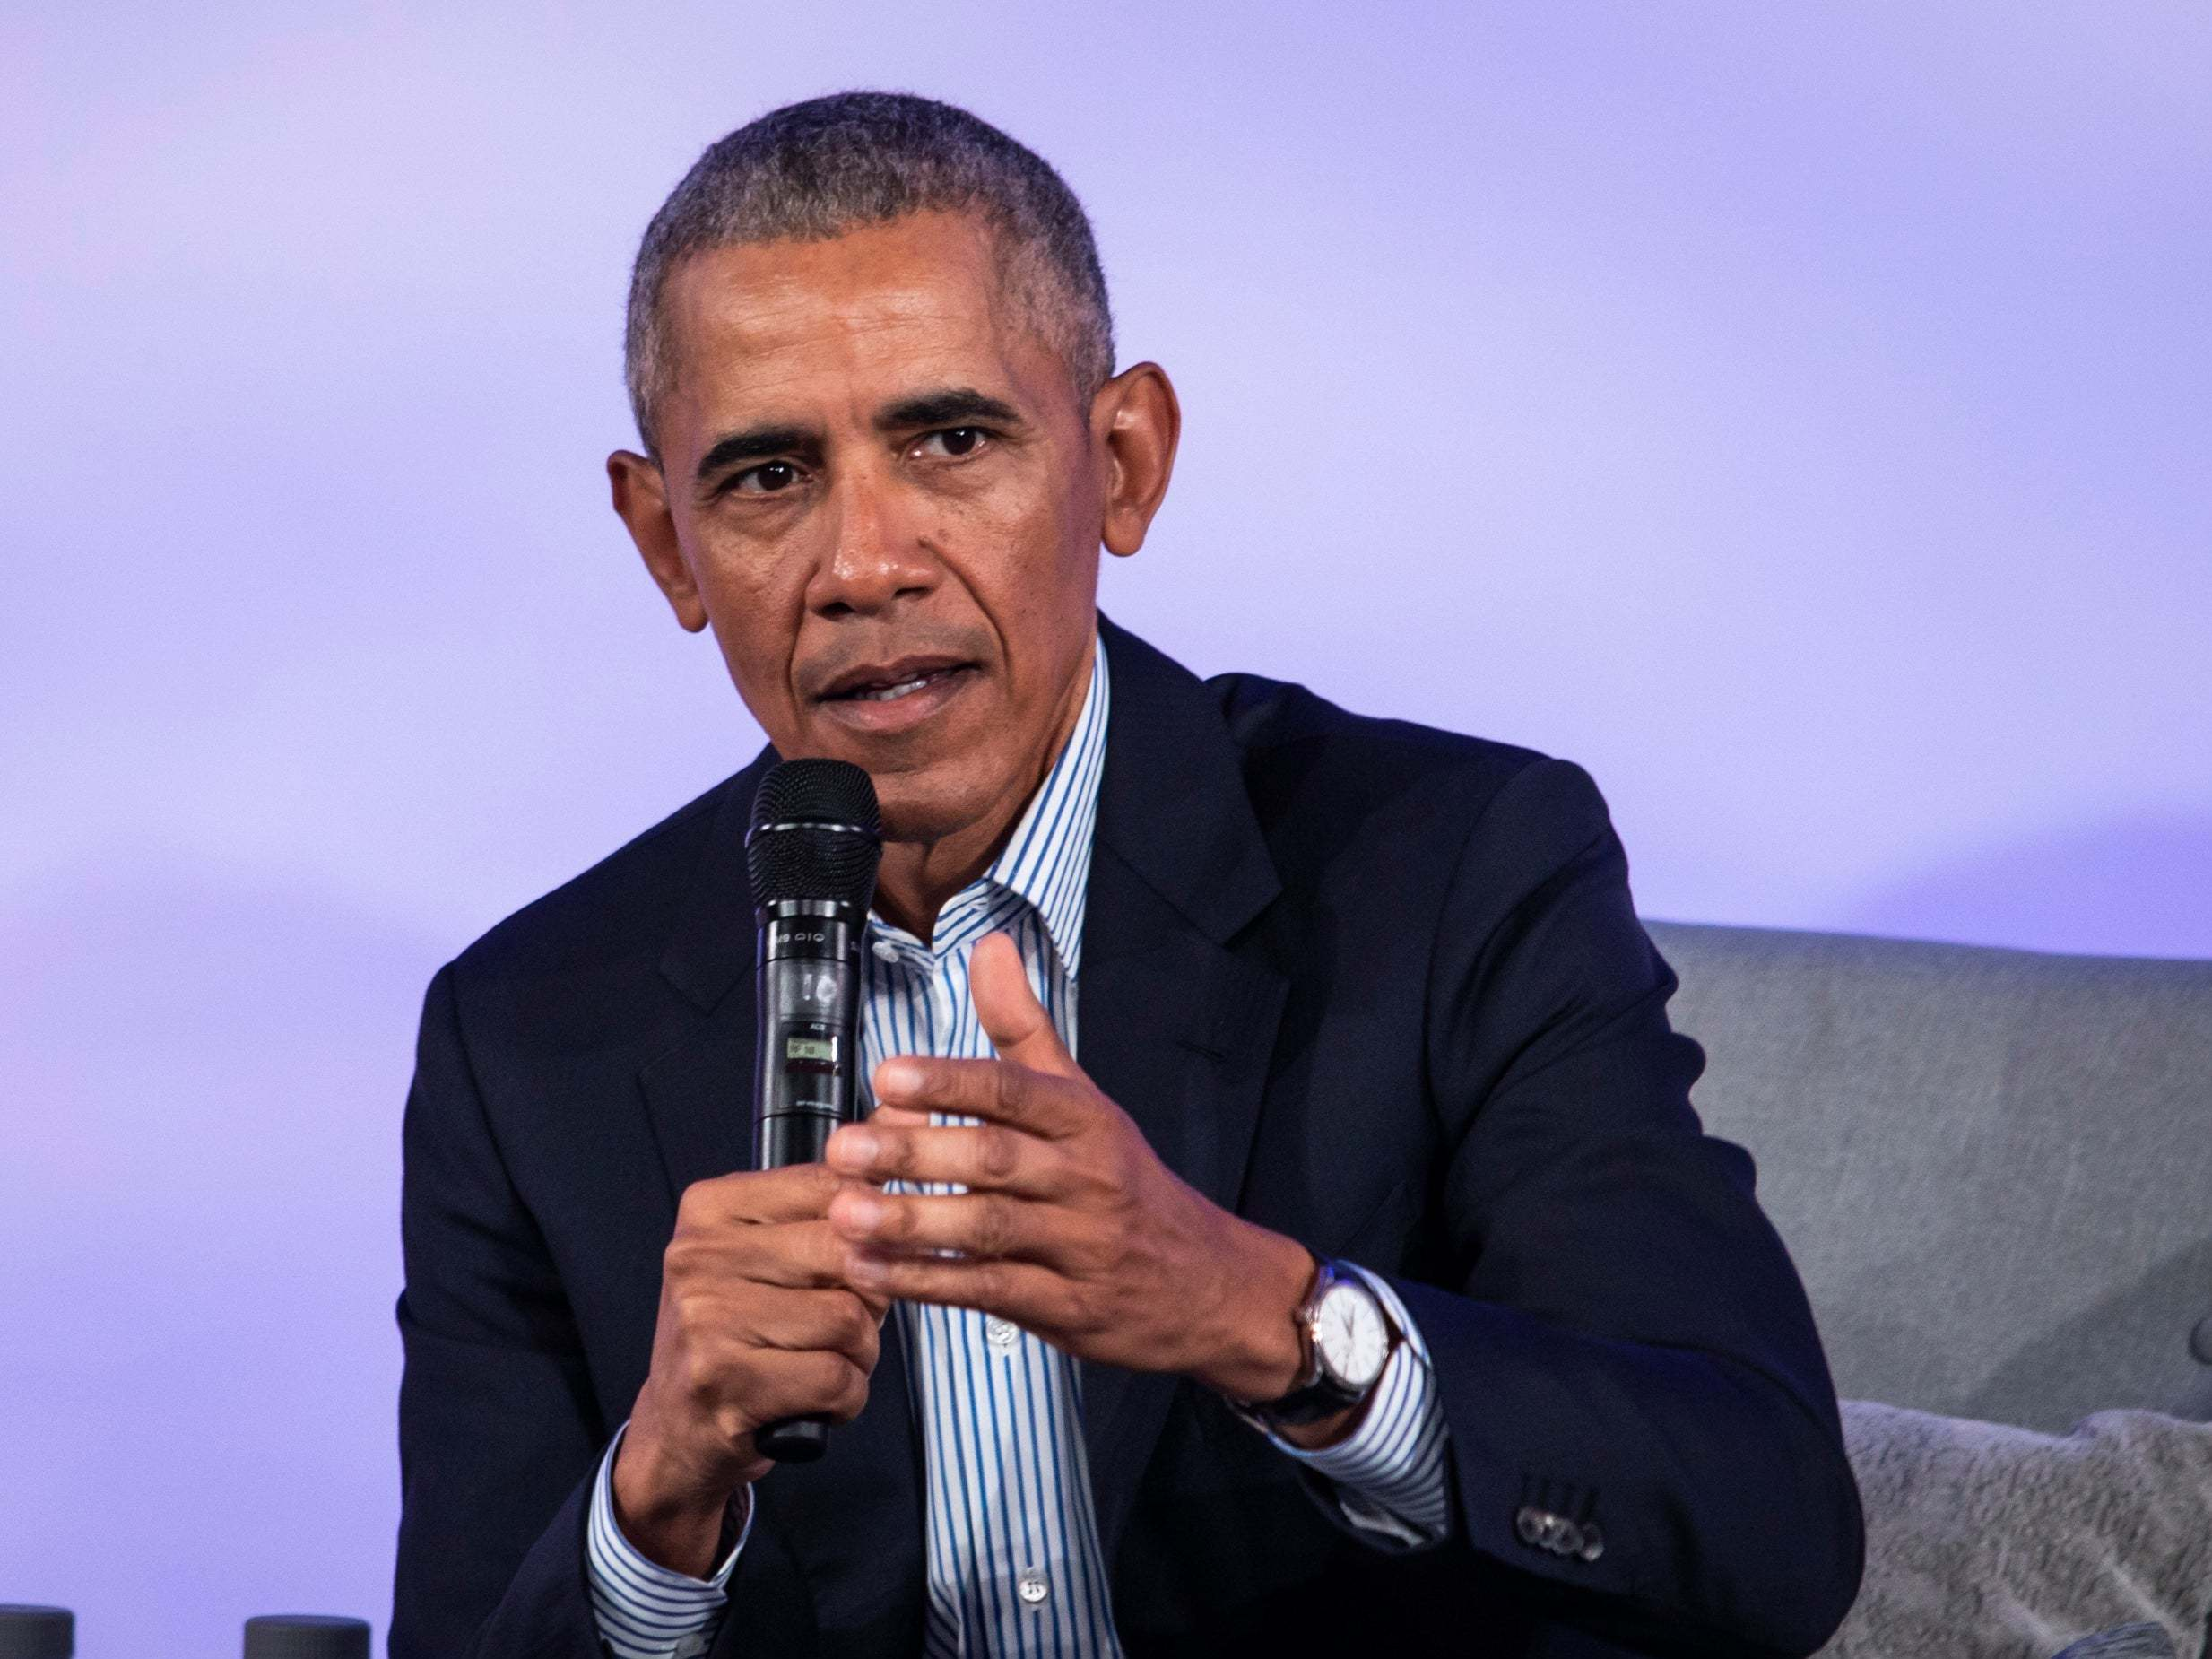 Barack Obama calls out cancel culture: 'That's not ...